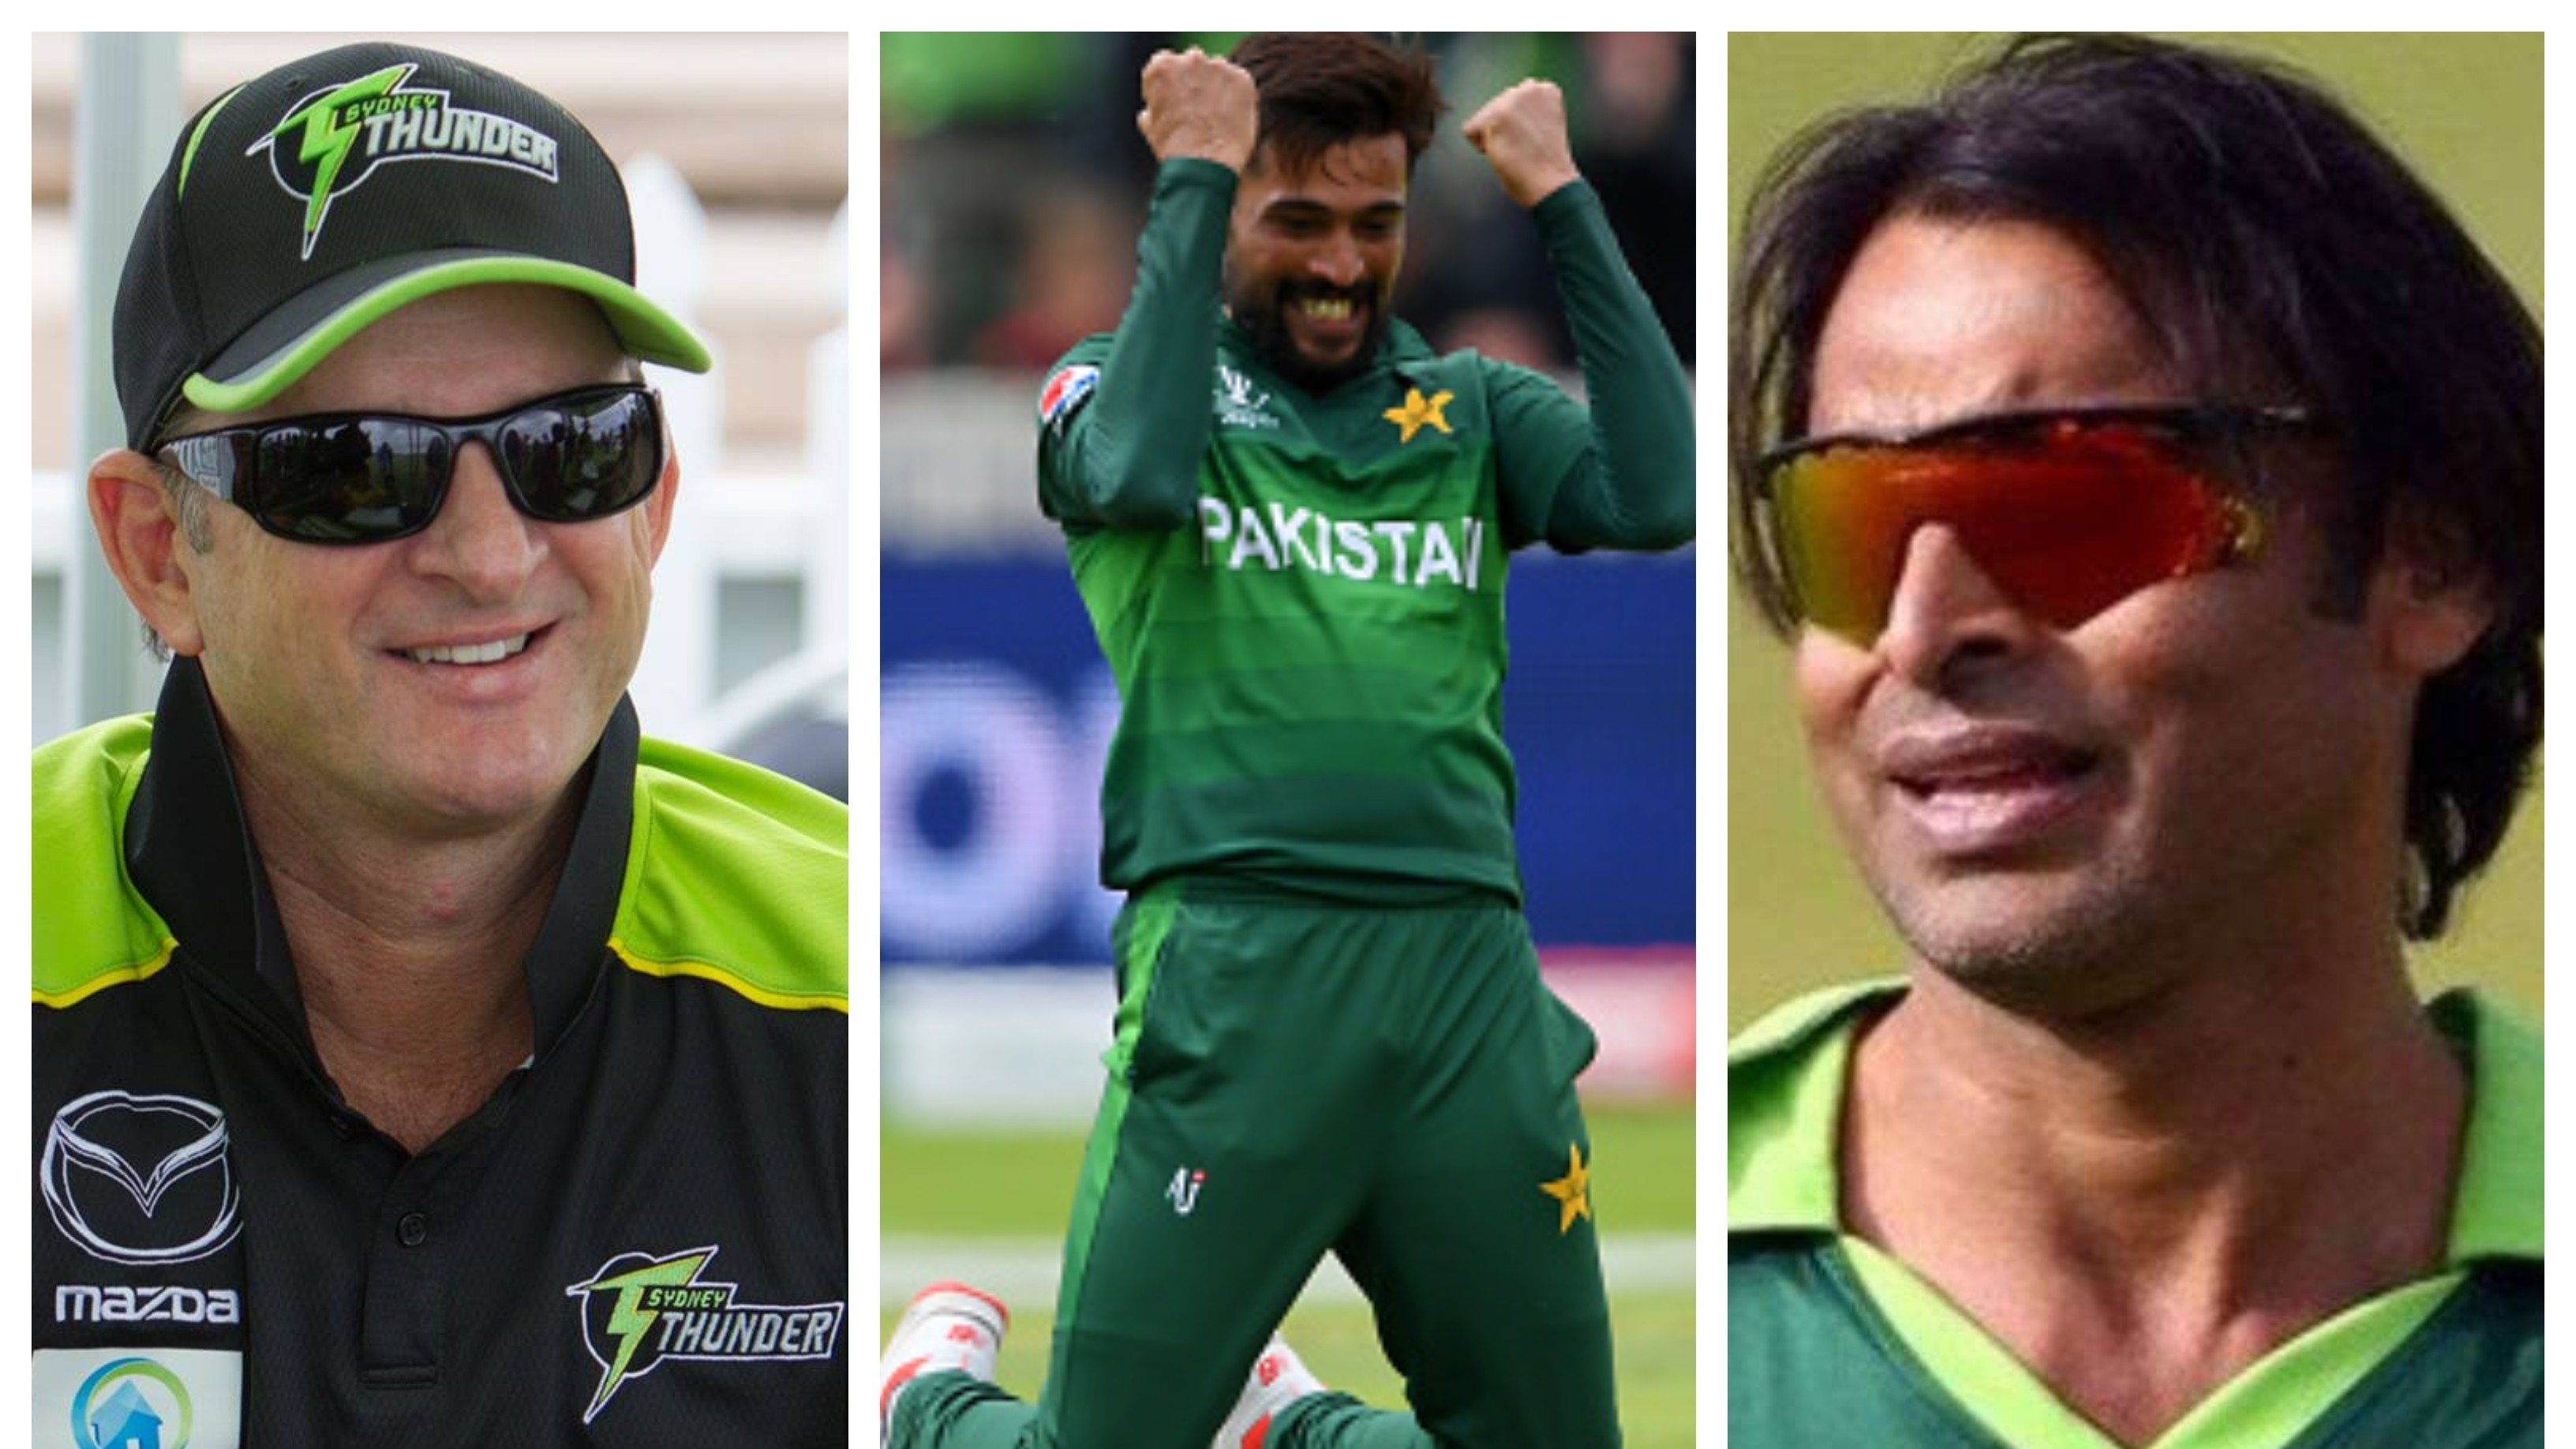 CWC 2019: Twitter reacts as Amir's 5-fer helps Pakistan to bowl out Australia for 307 despite Warner's ton